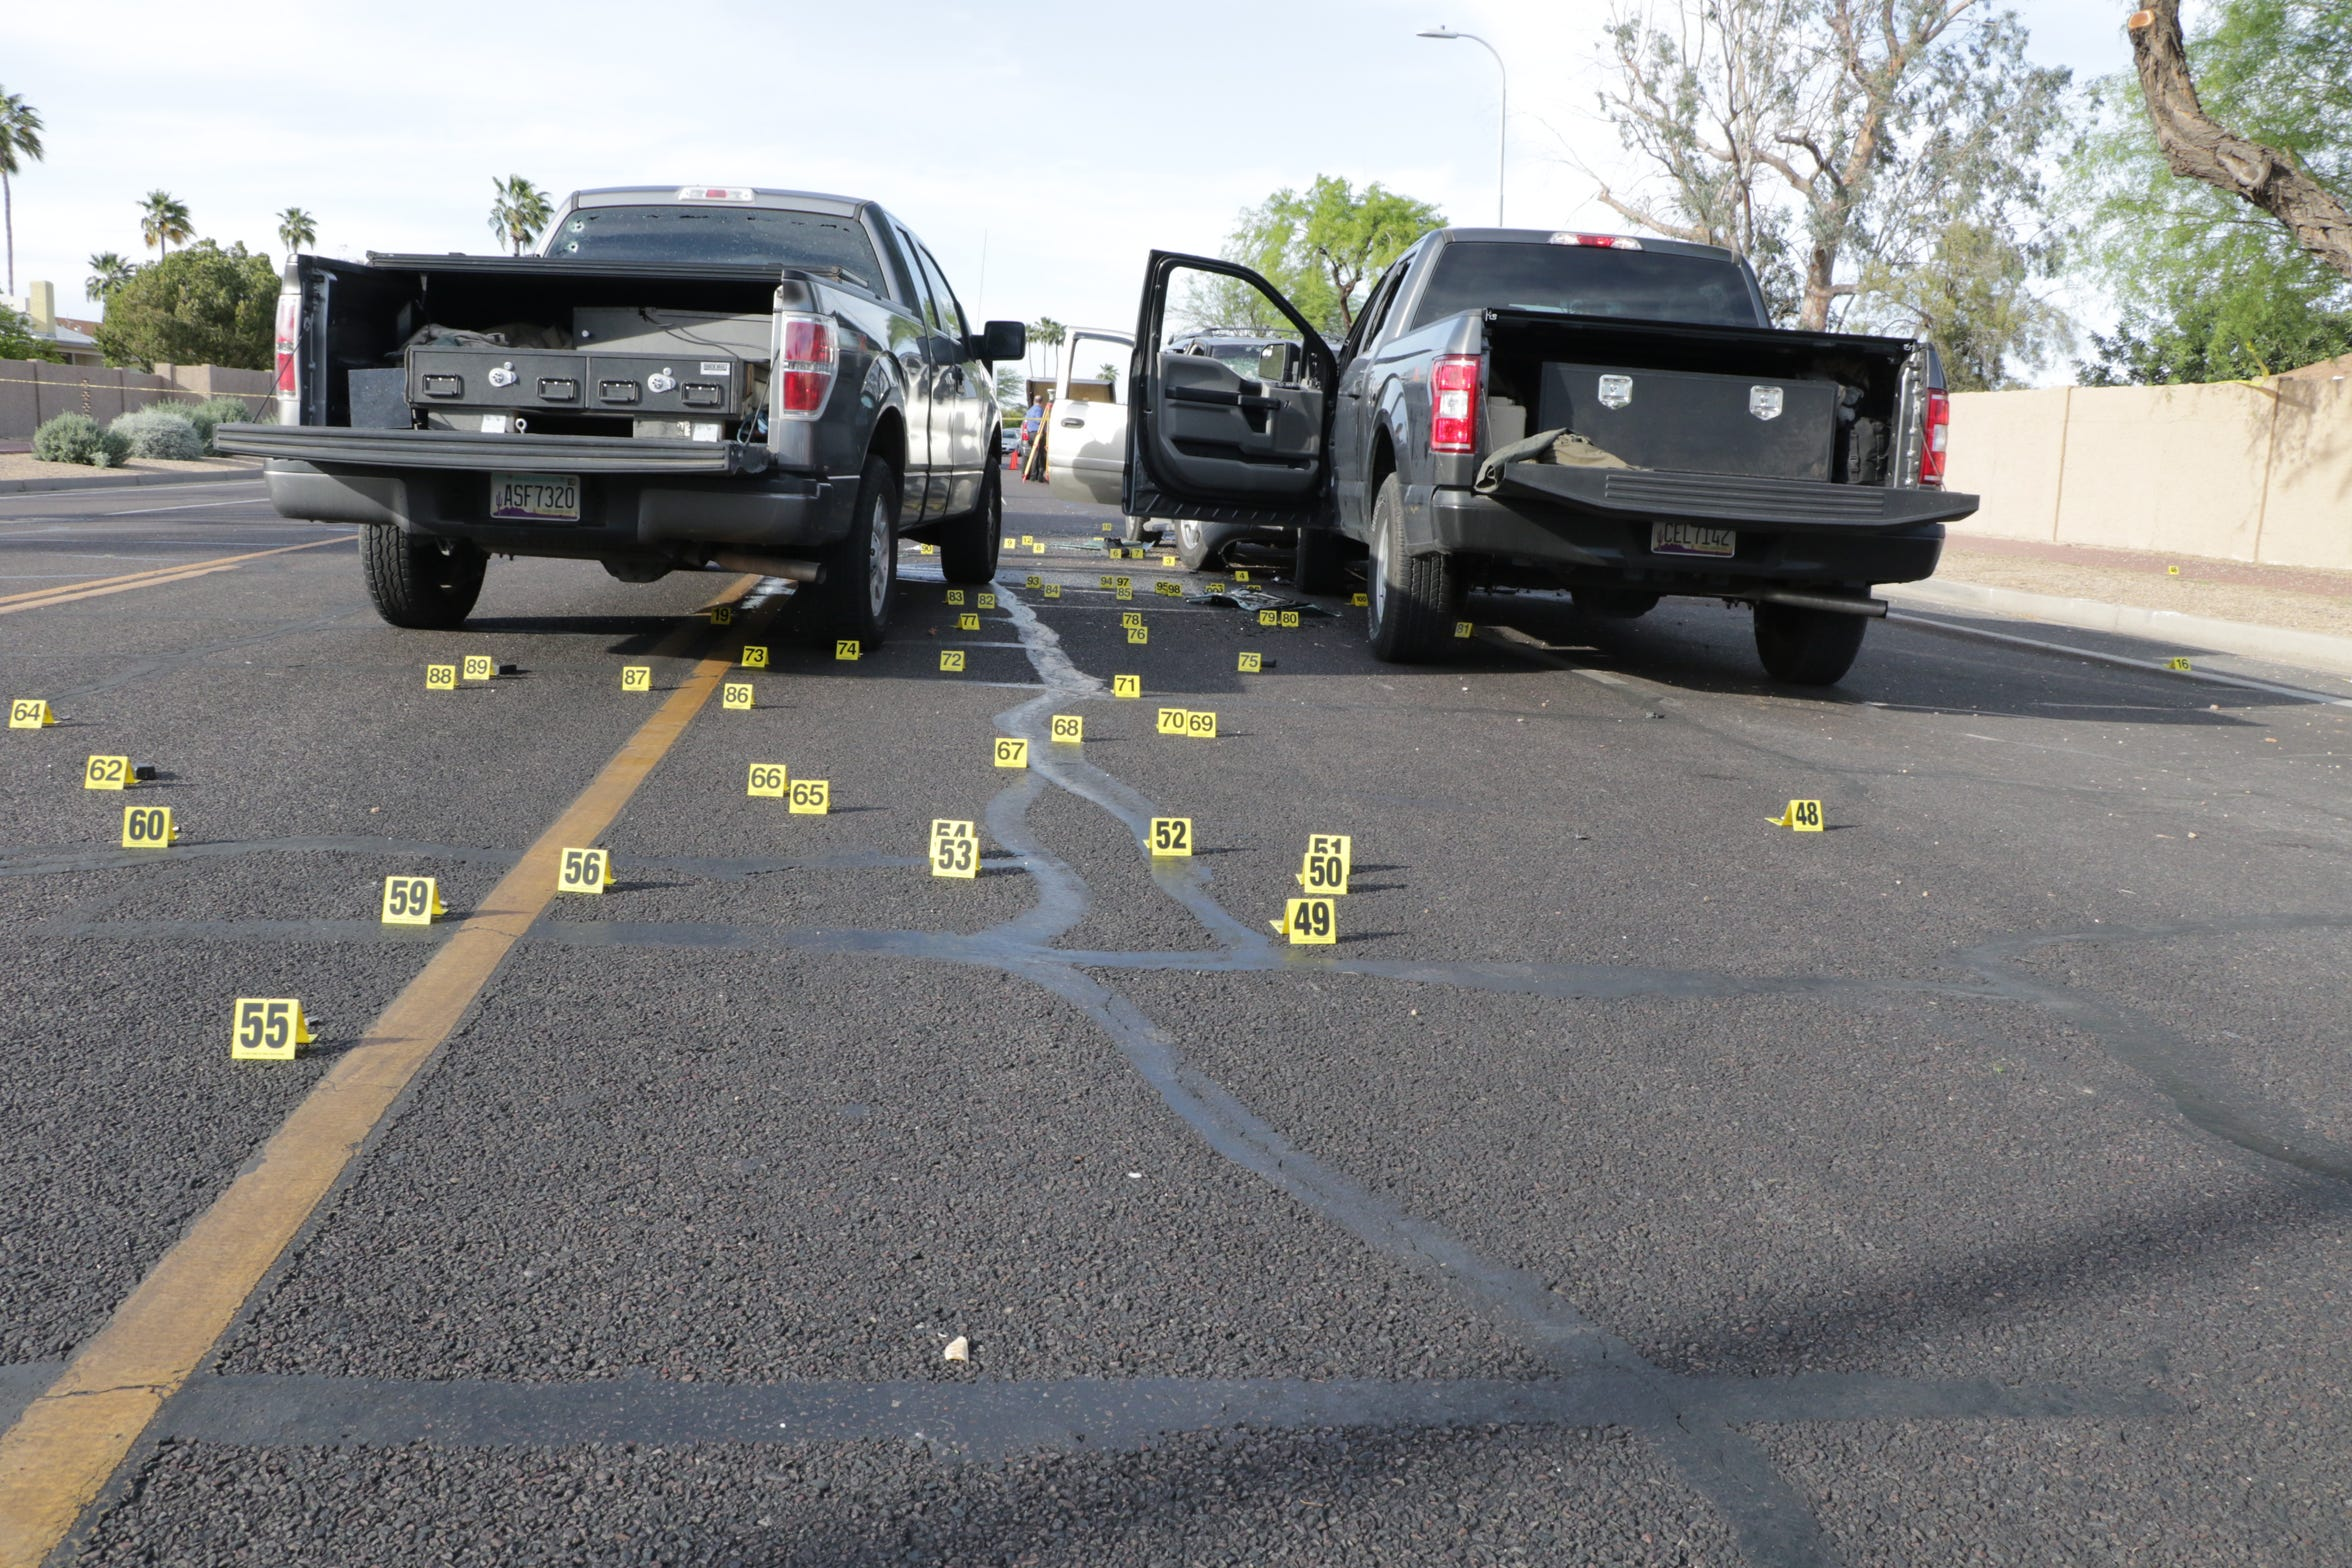 The Phoenix Police Department investigated the shooting involving federal agents from Homeland Security Investigations on April 11, 2019, in Ahwatukee Foothills.